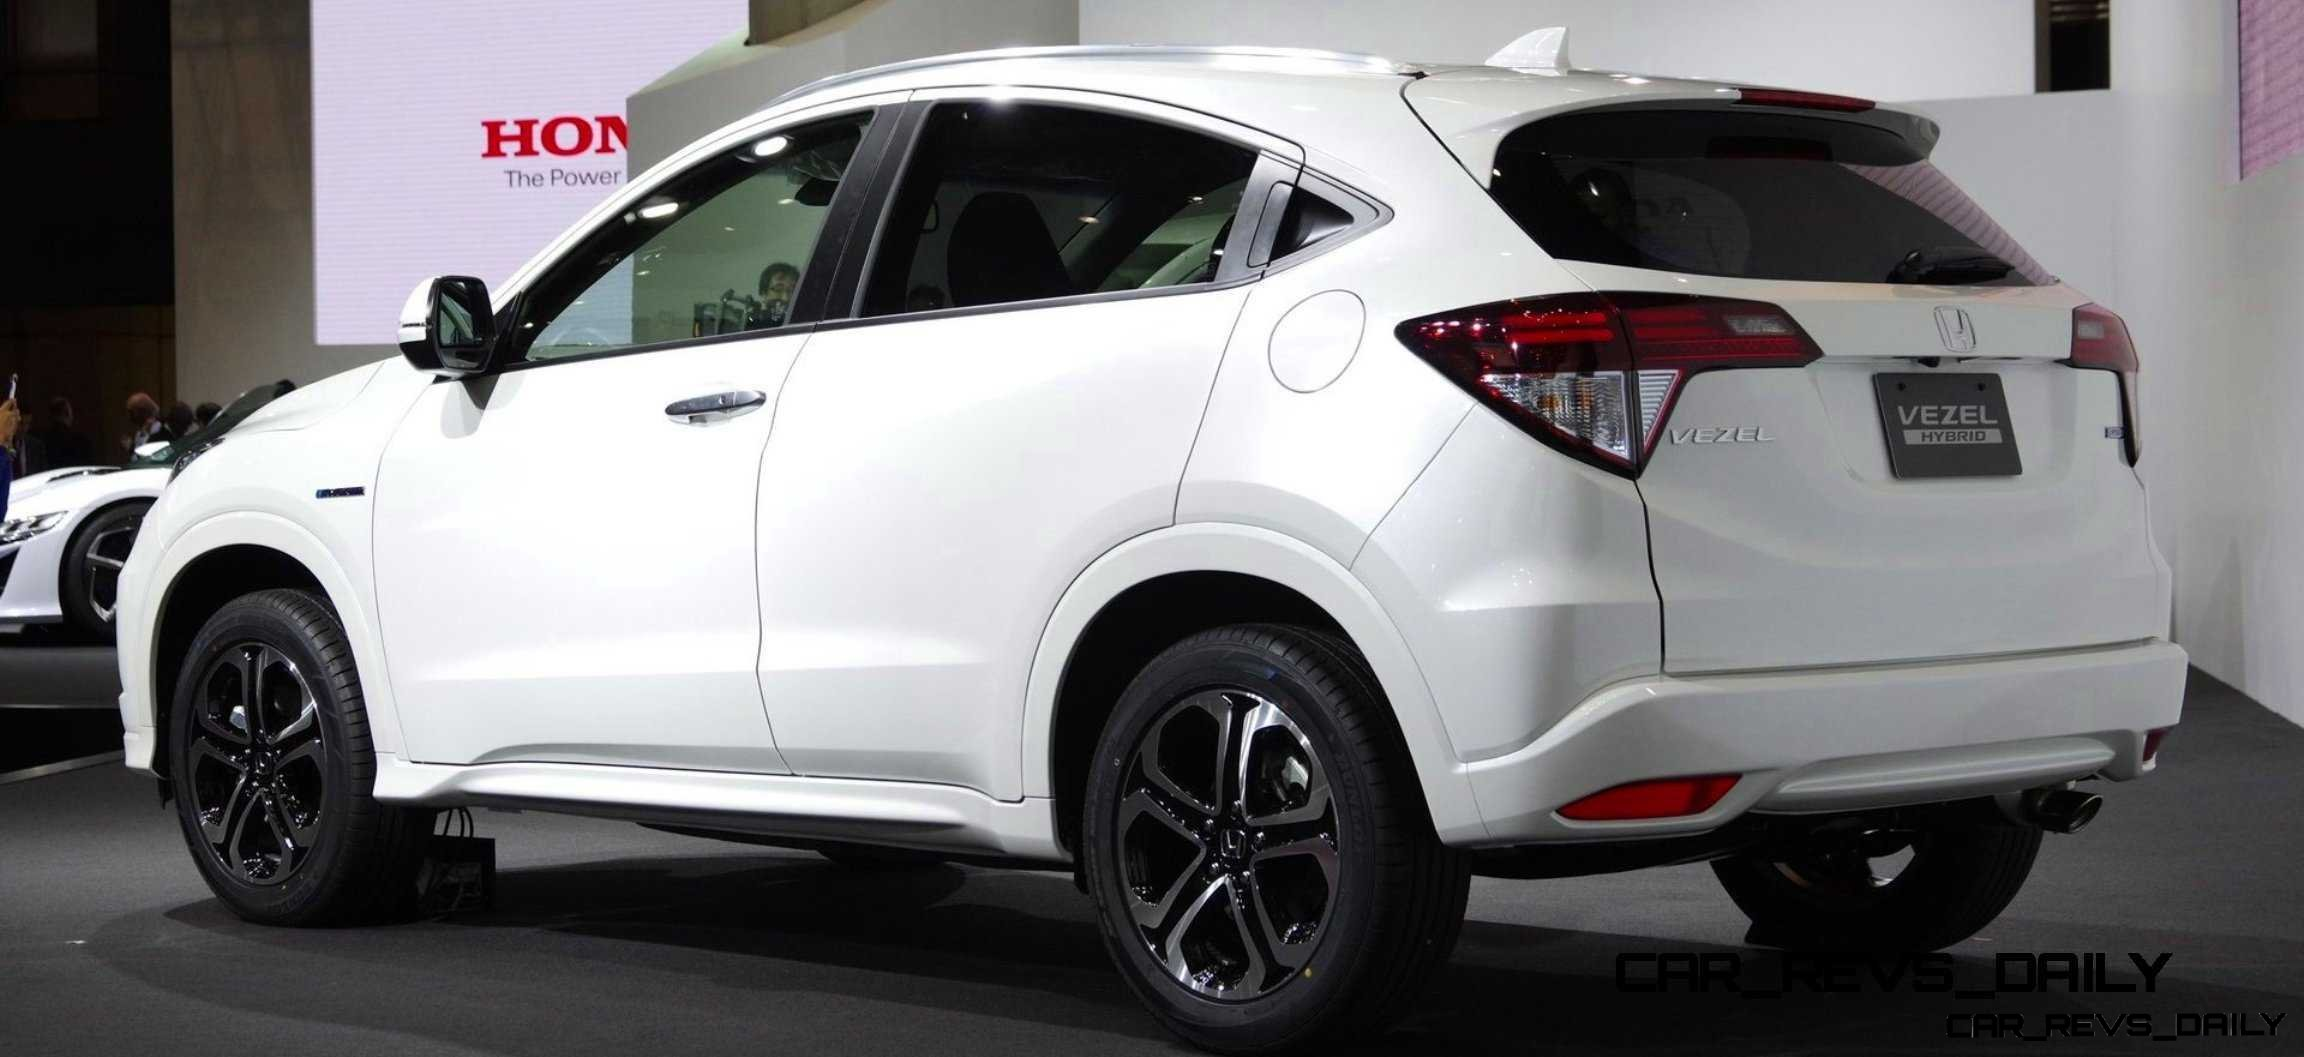 Cool! 2015 Honda Vezel Hybrid Previews Spring 2014 Civic CUV3